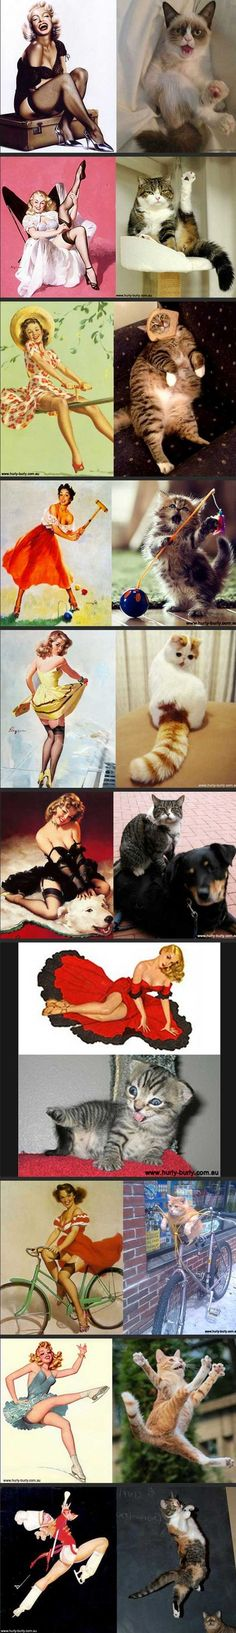 trendy cats funny laughing so hard kitty humor - Cat ❤ - Katzen / Cat Funny Cute, The Funny, Hilarious, Crazy Cat Lady, Crazy Cats, I Love Cats, Cute Cats, Humor Animal, Animal Pictures